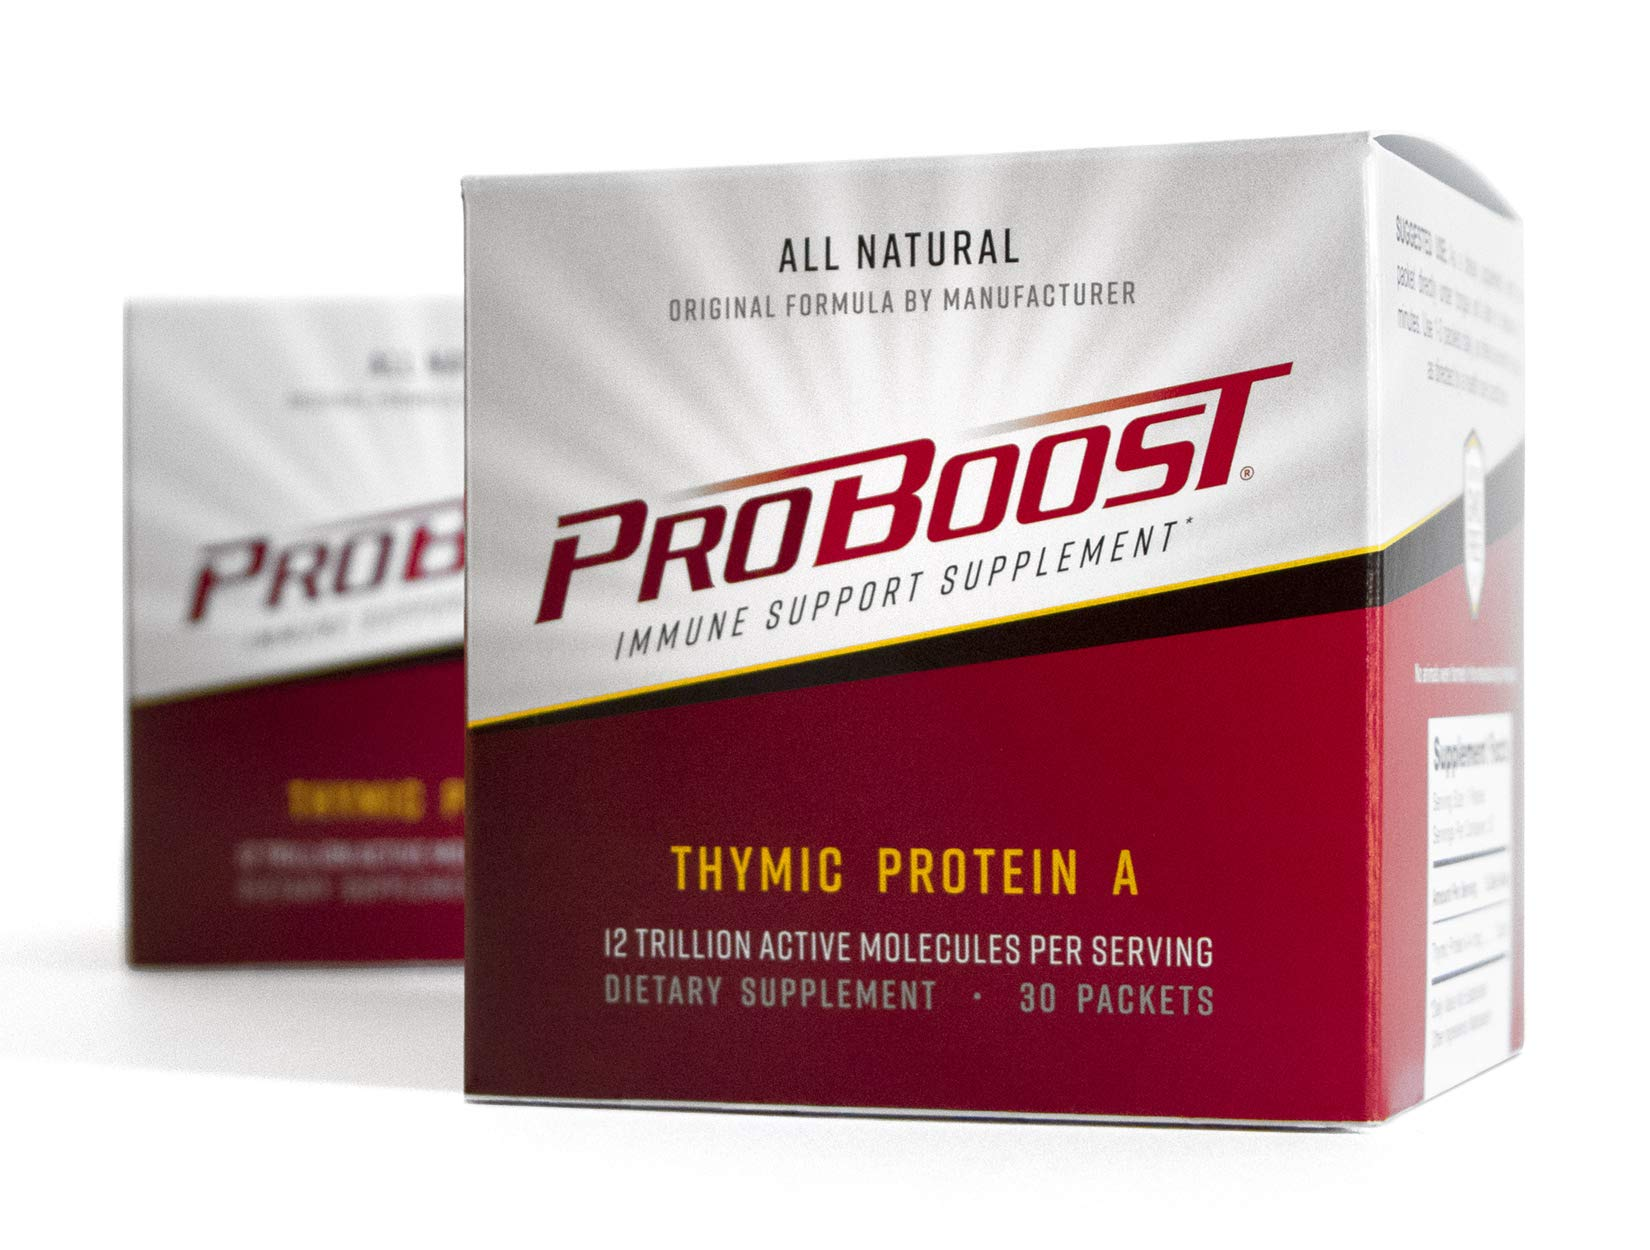 ProBoost, Thymic Protein A (TPA), 60 Packets with 4 mcg TPA/Packet - Immune Support Supplement by Genicel, Inc.